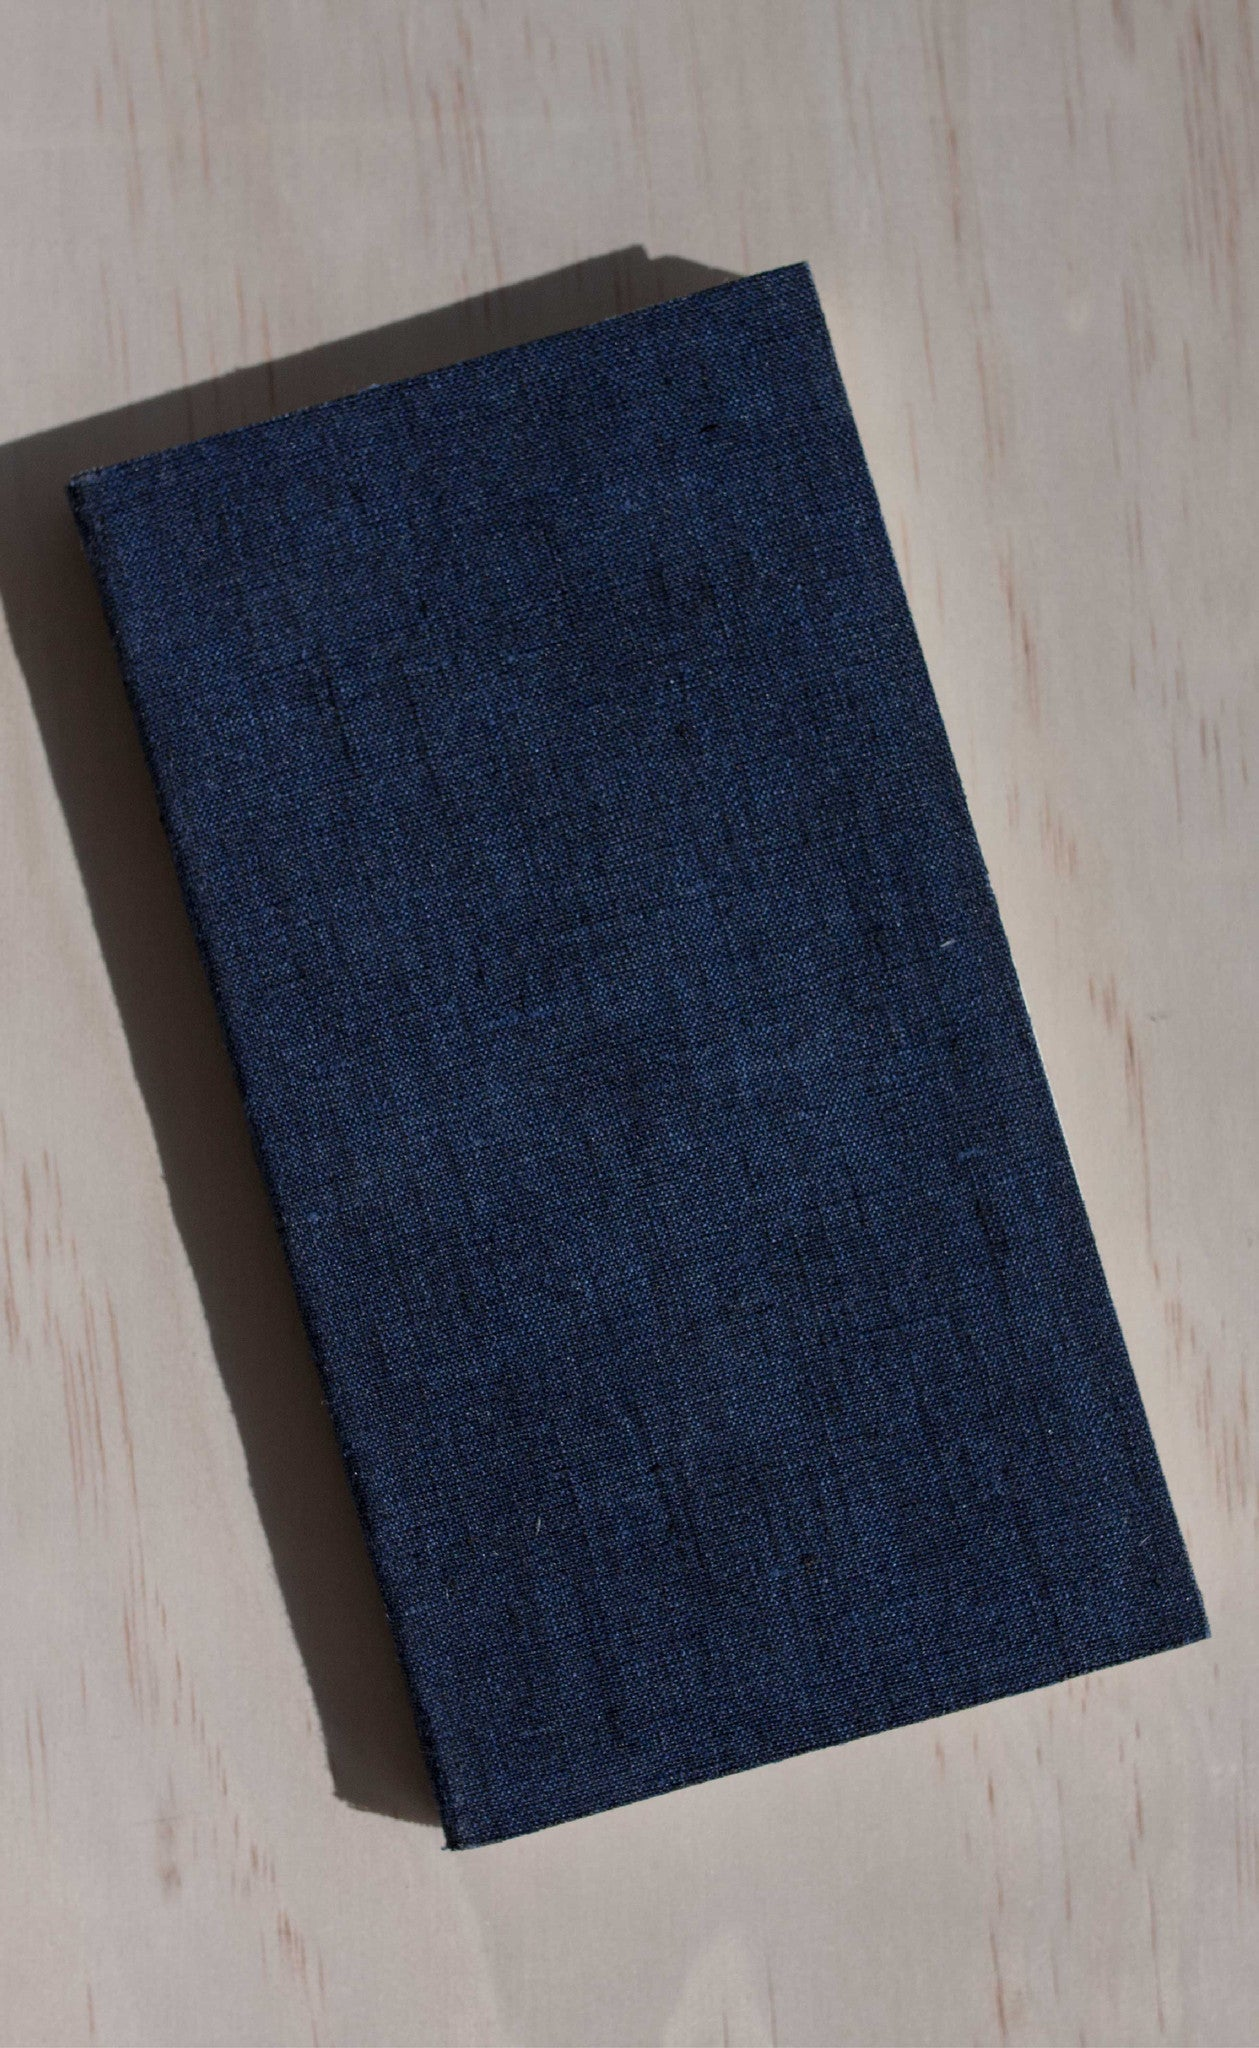 Flat lay view of the tall sized pocket notebook in dark navy linen.